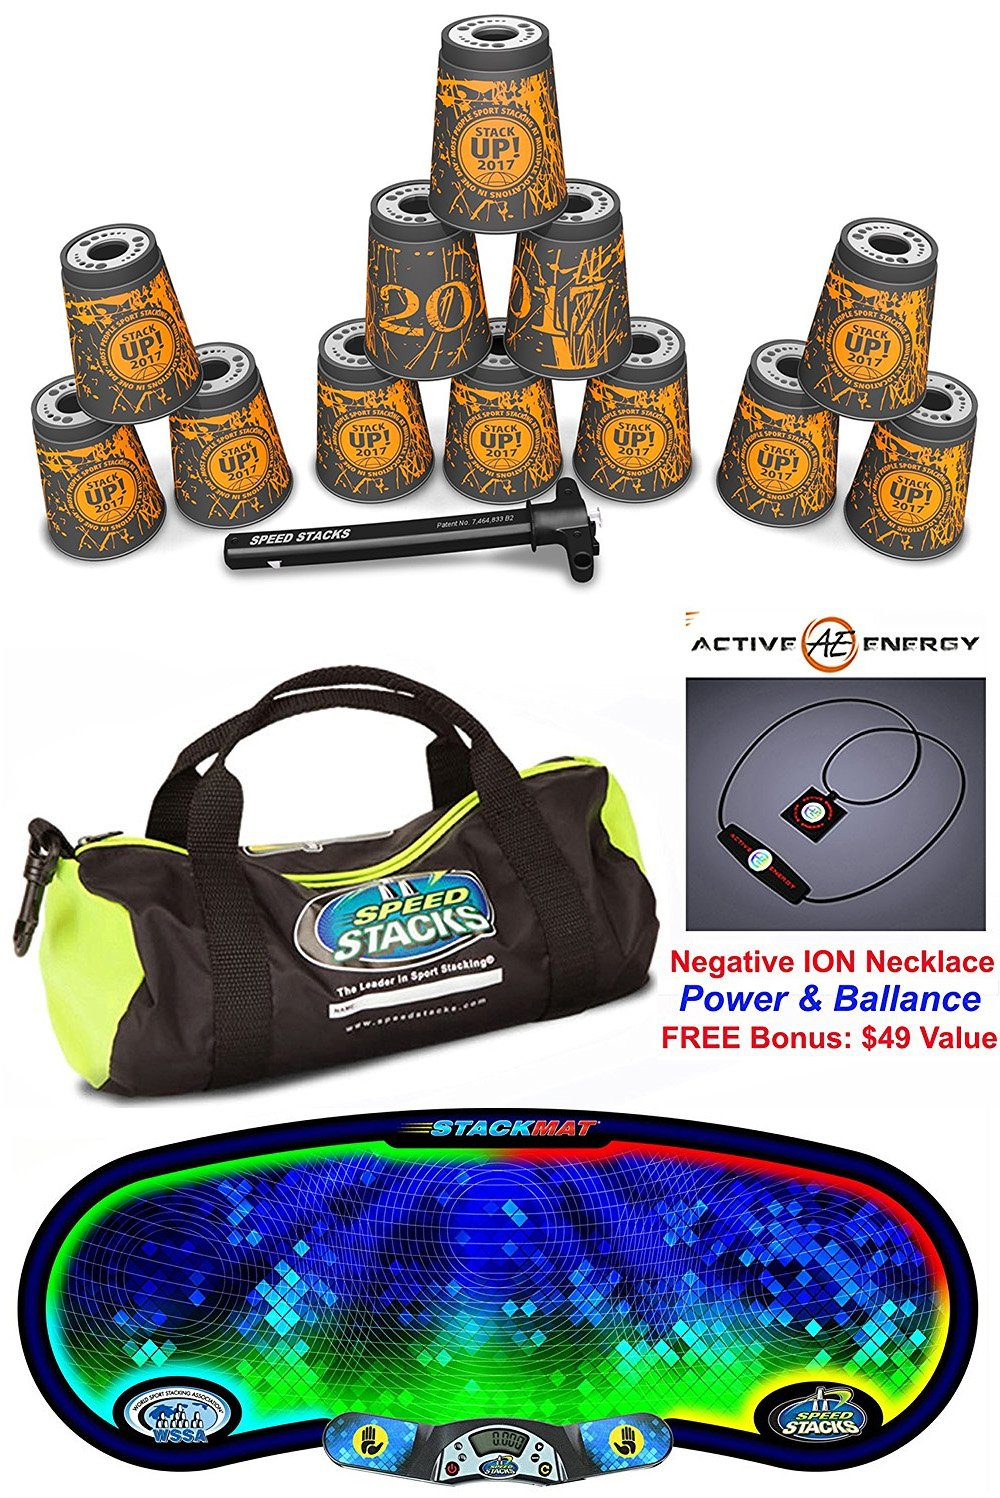 Speed Stacks The Works Custom Combo Set: 12 of 2017 STACK UP 4'' Cups, Cup Keeper, Quick Release Stem, Pro Timer G4, Gen 3 Mat, Gear Bag + Active Energy Necklace $49 Value